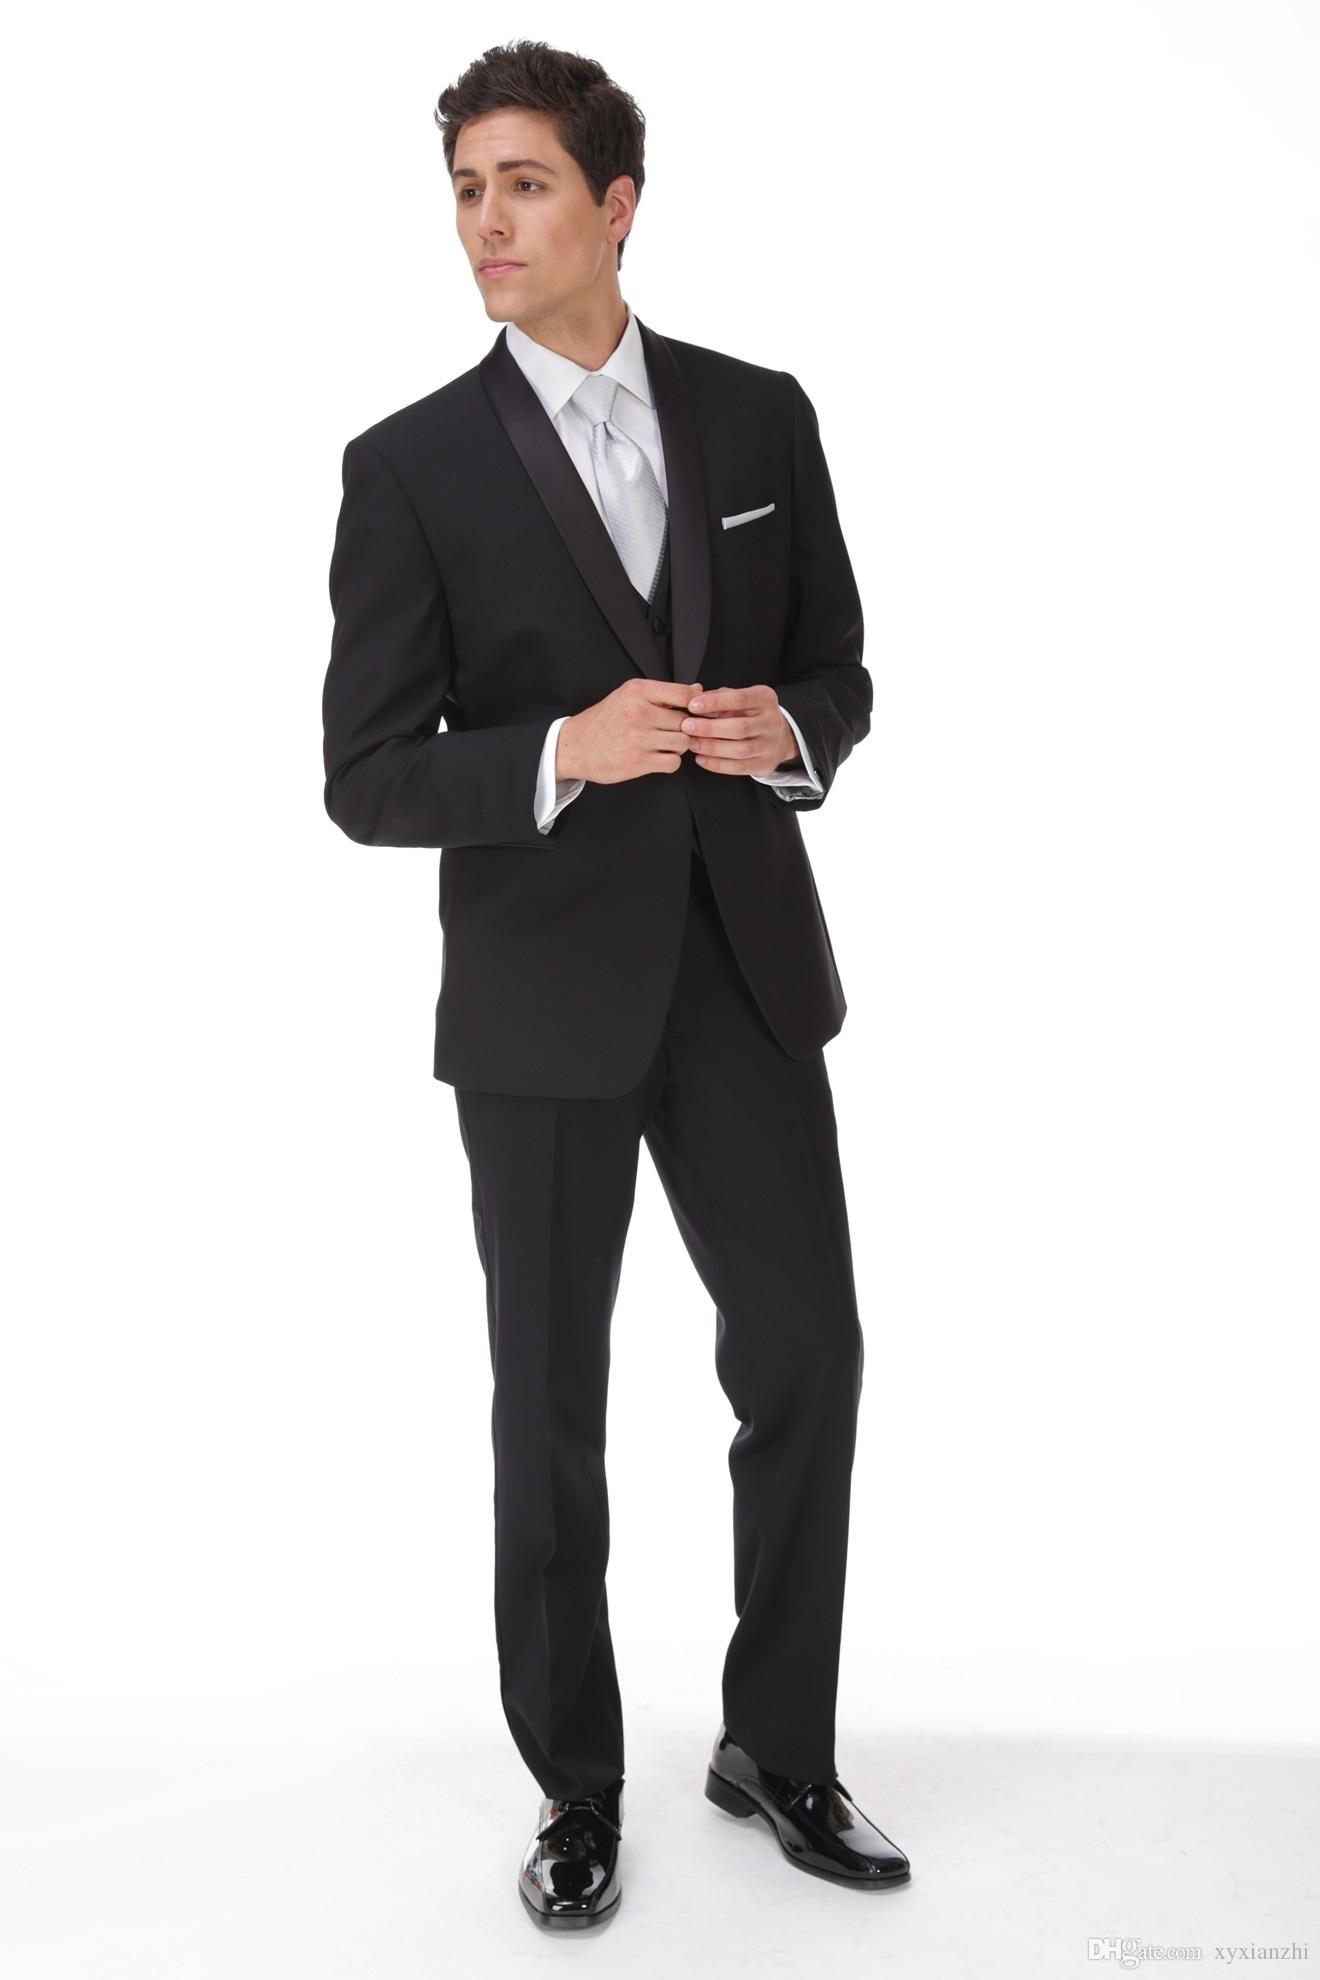 wedding suits for groom tuxedo black formal wear 2020 custom made suit 3 piece high quality